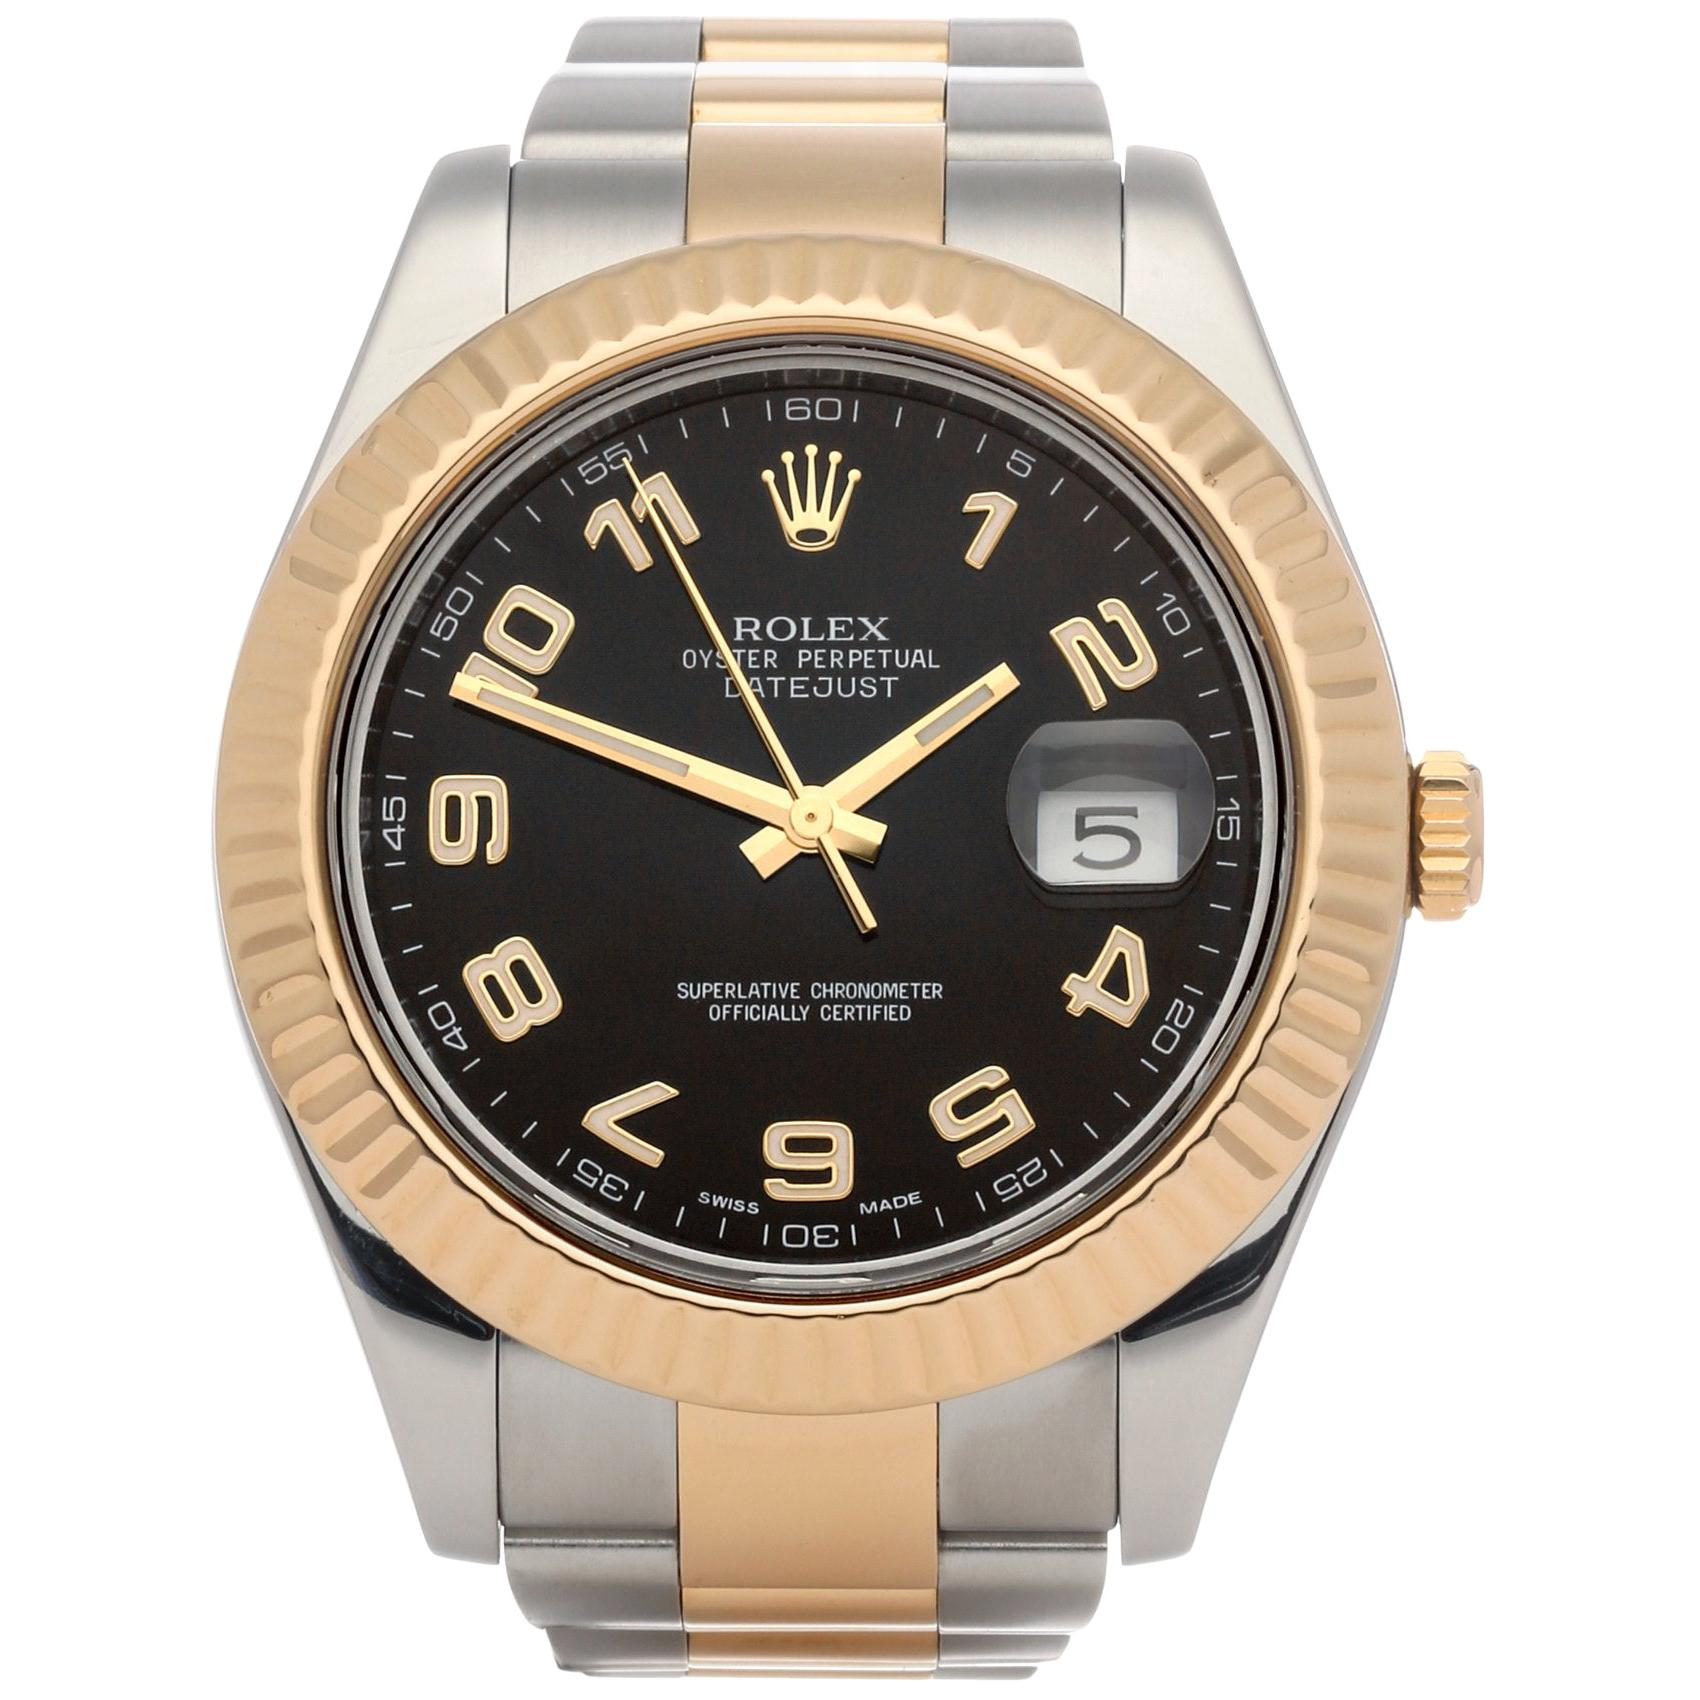 Rolex Datejust 41 116333 Men's Stainless Steel and Yellow Gold Watch